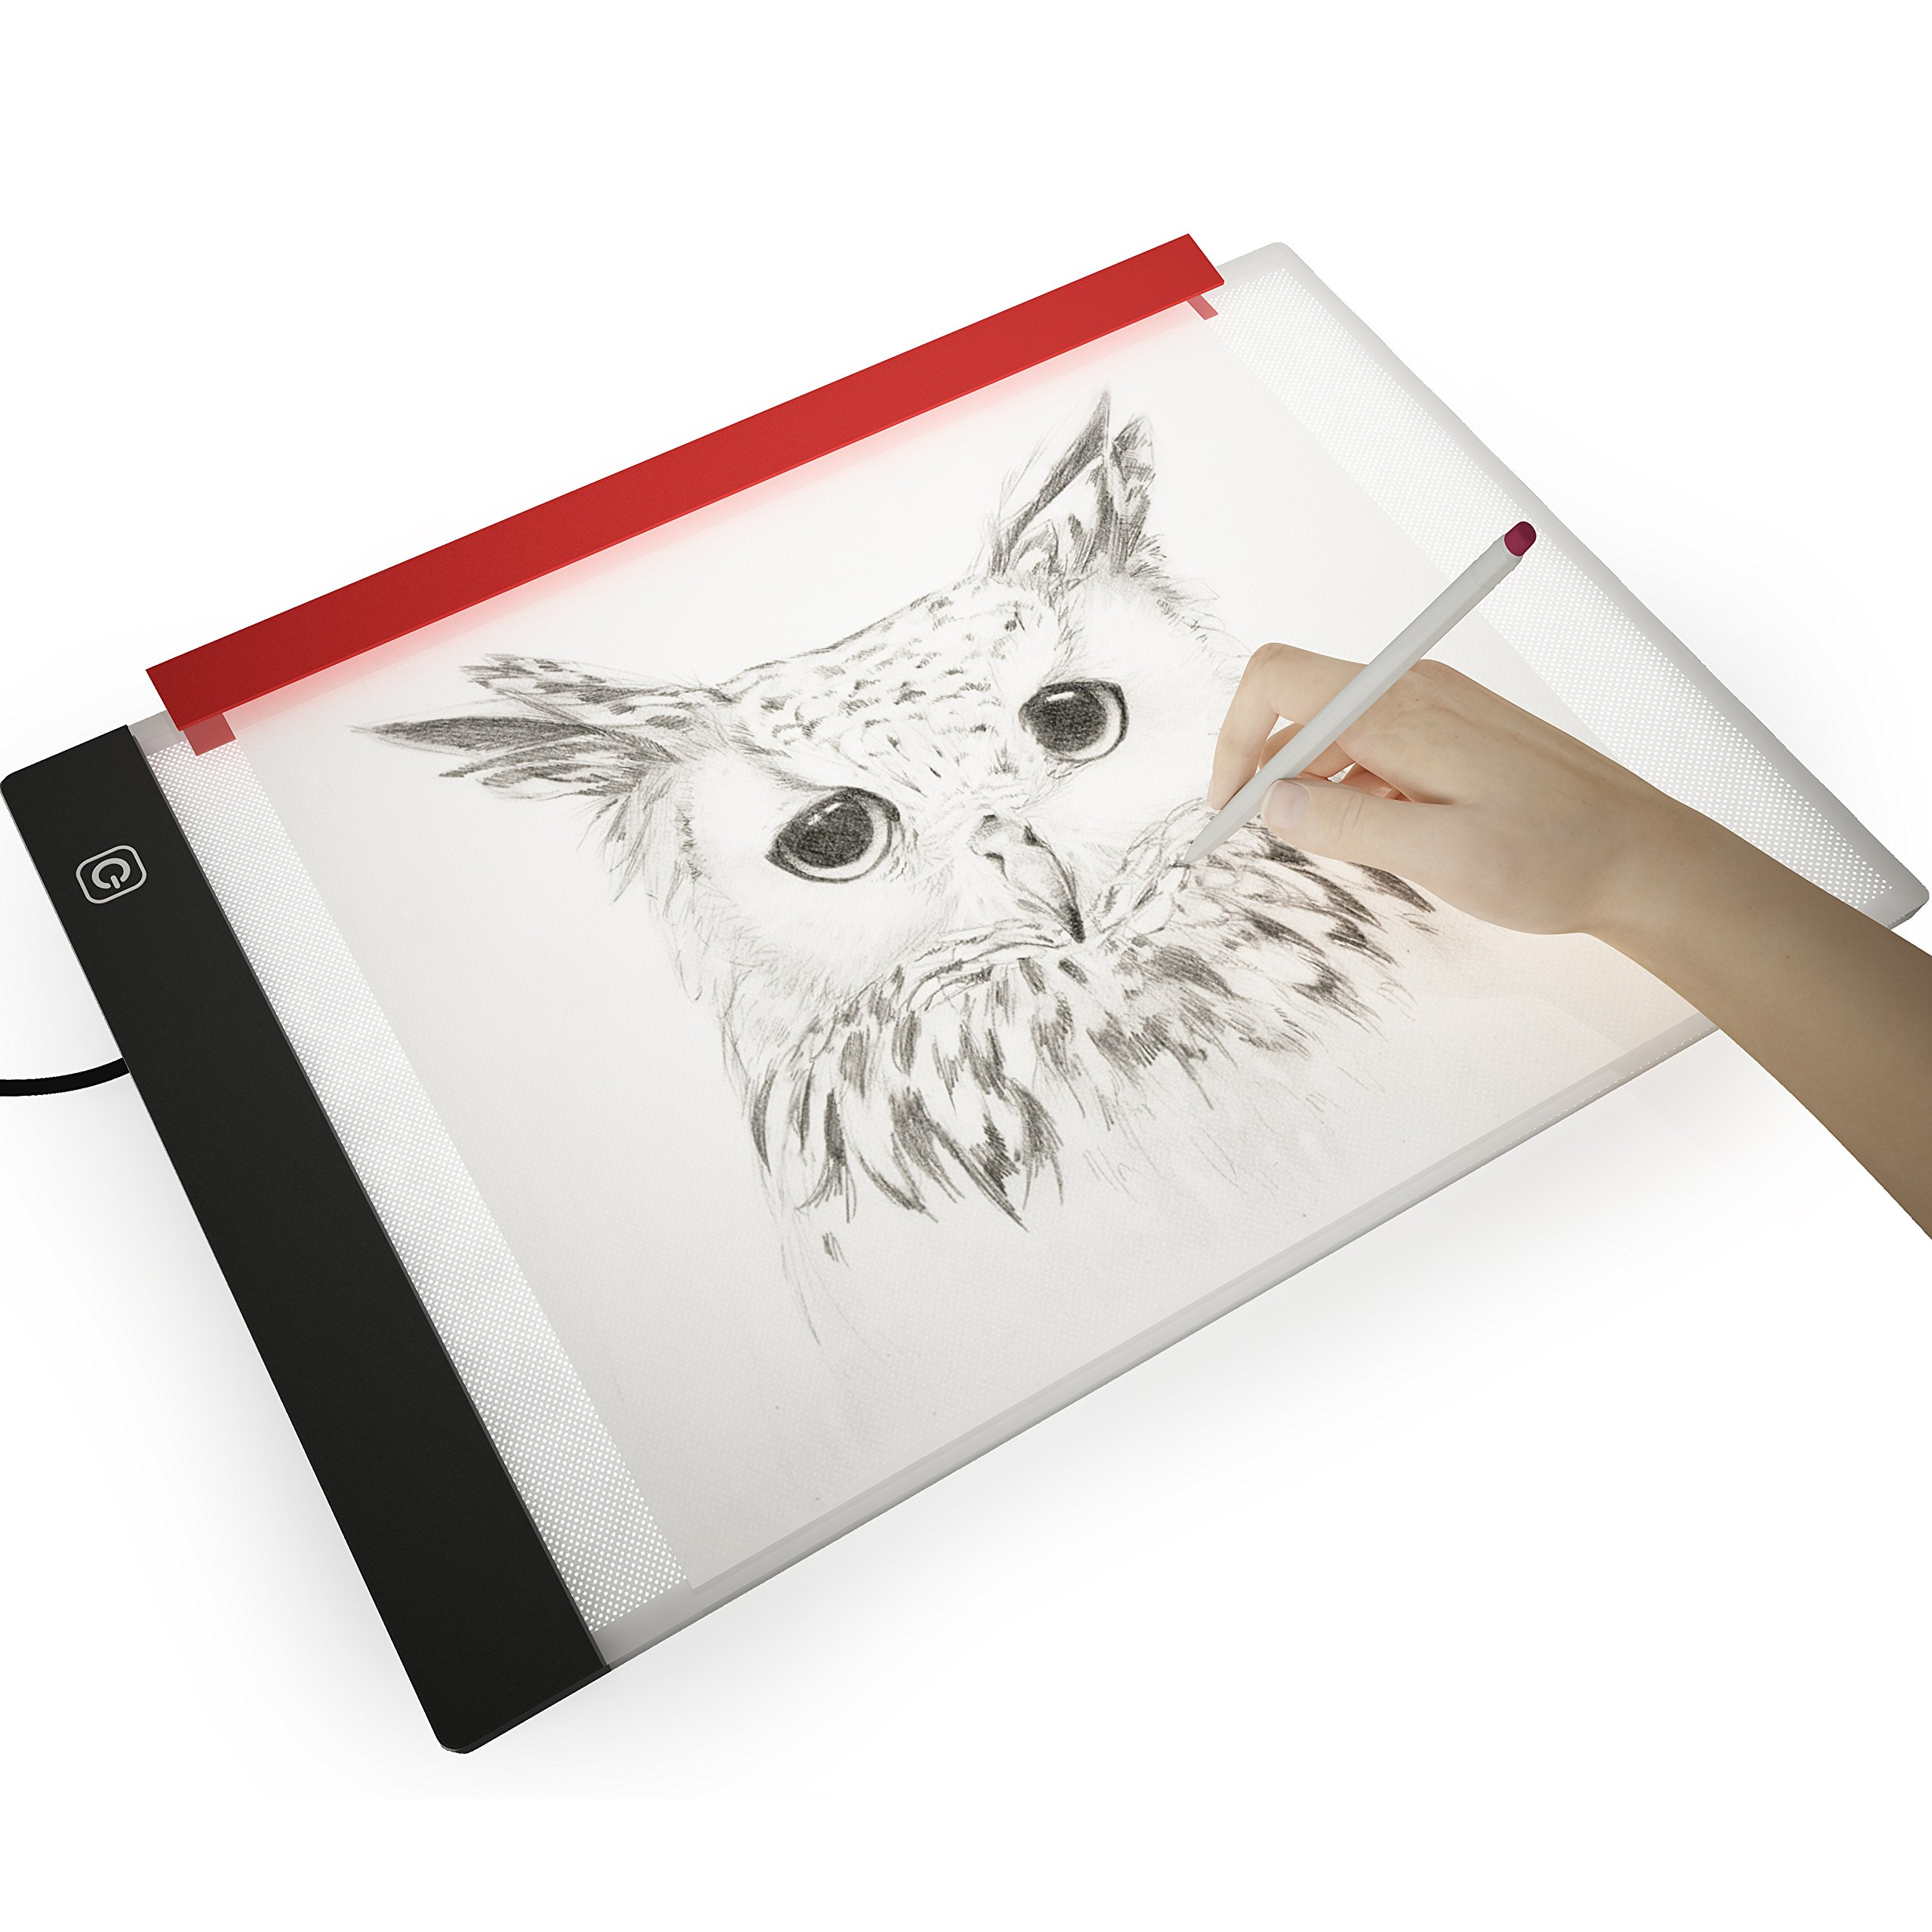 Picture/Perfect Best Light Box for Tracing ~ Ultra Thin Portable LED Light Pad with Advanced Filter to Prevent Eye Fatigue, Plus Free Paper Holder Clamp, A4 9''x13'' Table with Hi-Mid-Low Brightness by PicturePerfect